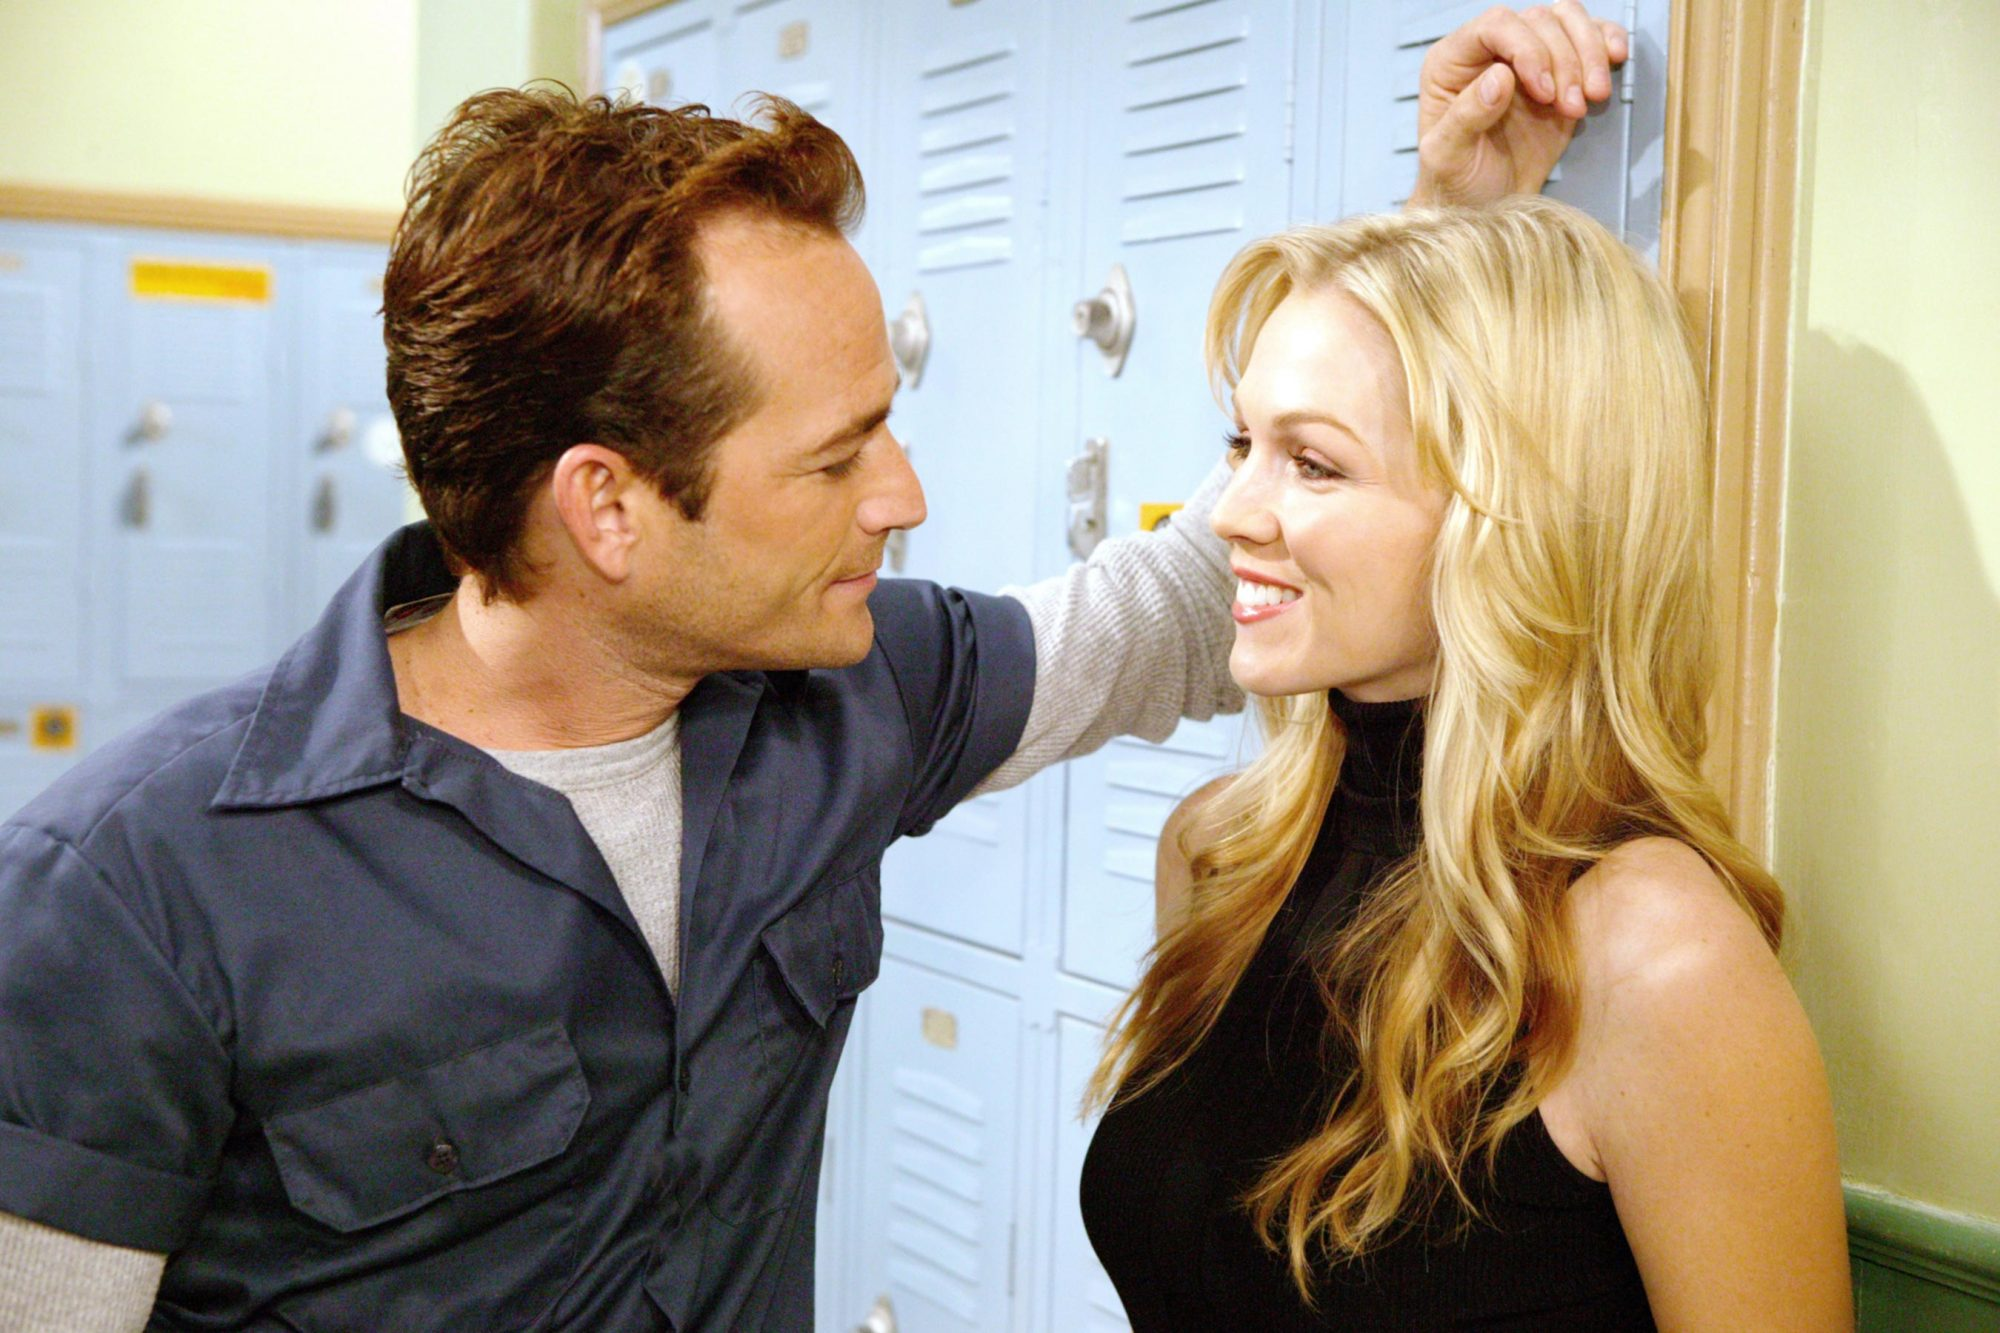 WHAT I LIKE ABOUT YOU, Luke Perry, Jennie Garth, 'Dangerous Liaisons', (Season 3, ep. #317), 2002-06